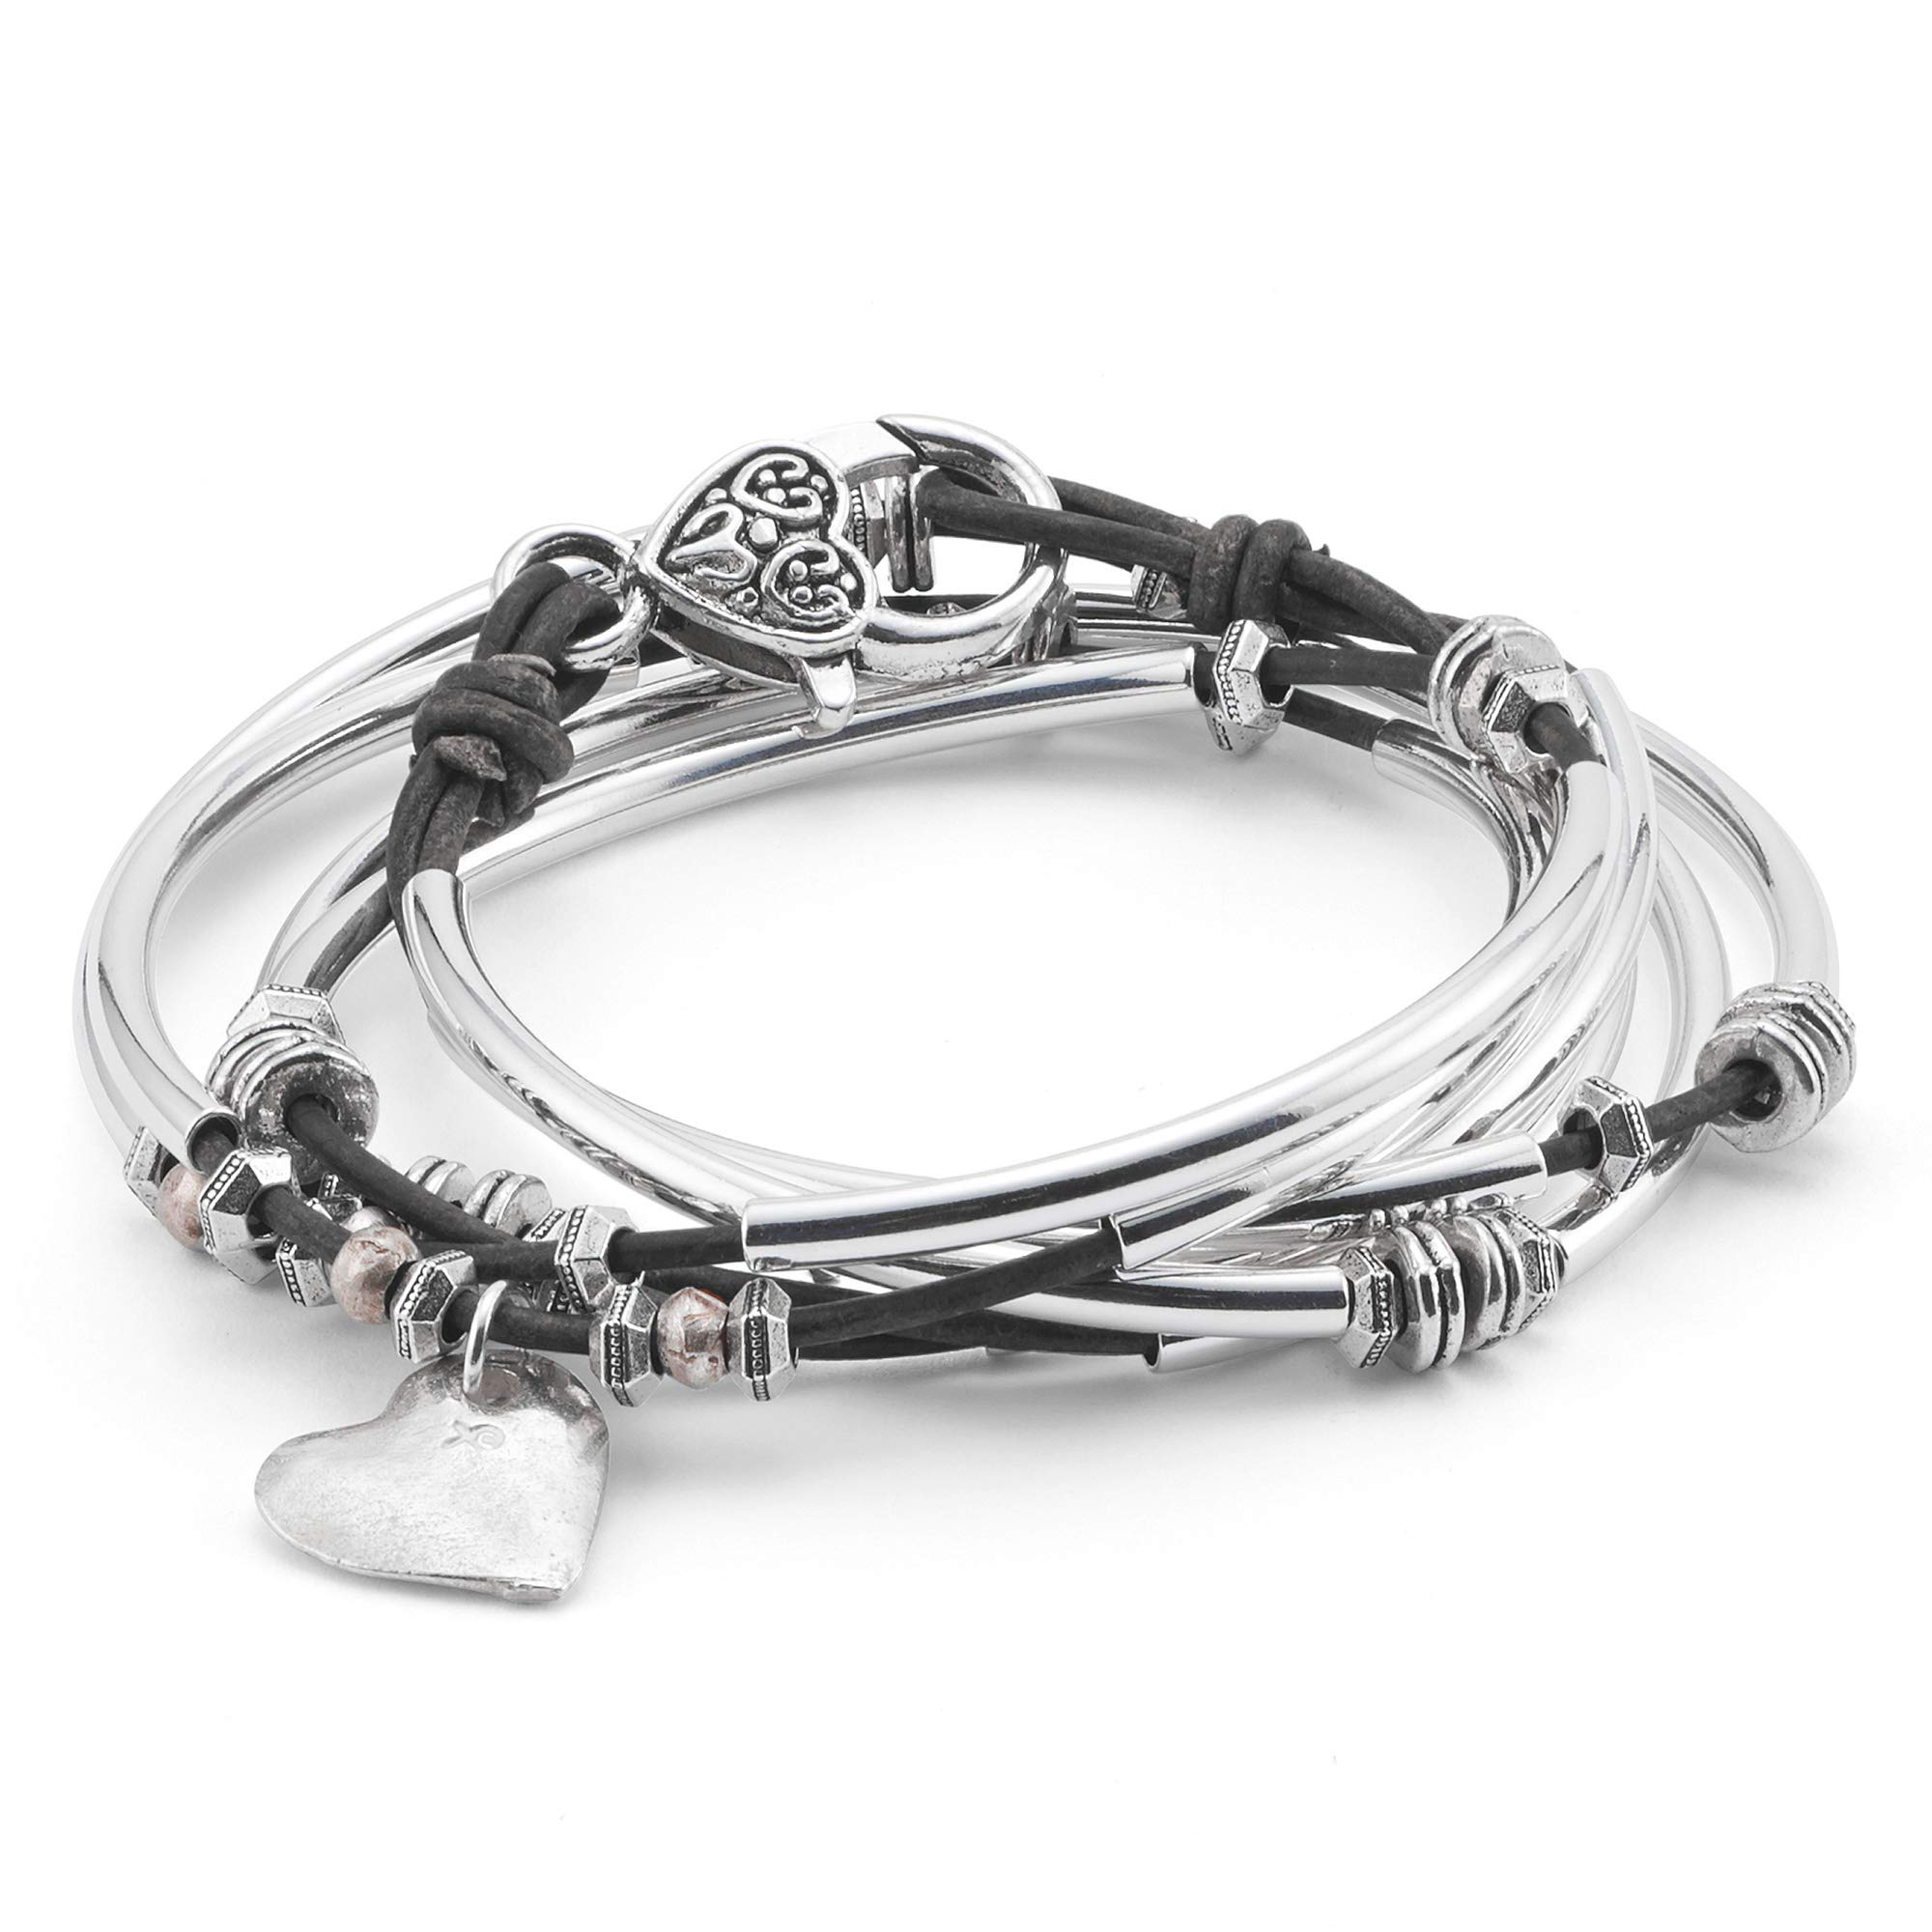 Lizzy James Double Love Silver Heart Charm Wrap Bracelet in Natural Black Leather (Medium) by Lizzy James